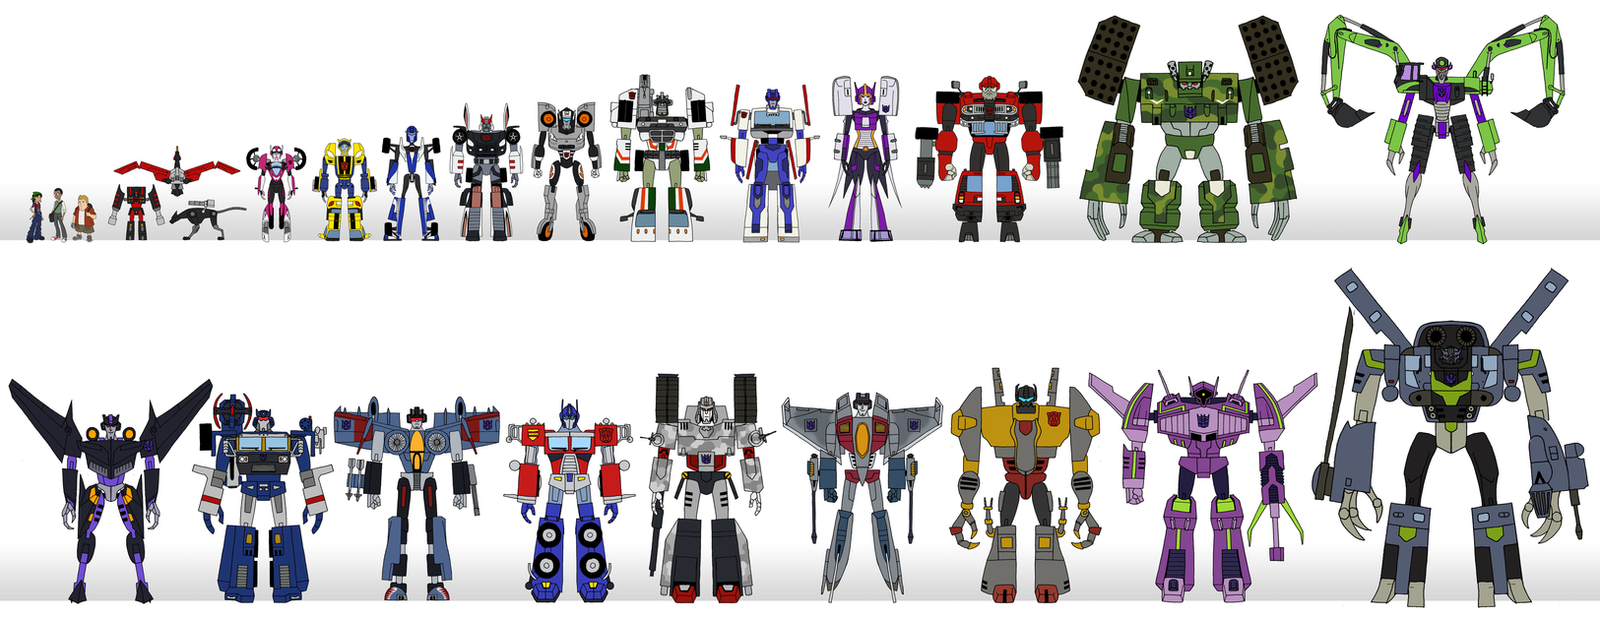 Transformers legacy size chart by cyraptor on deviantart transformers legacy size chart by cyraptor transformers legacy size chart by cyraptor greentooth Images